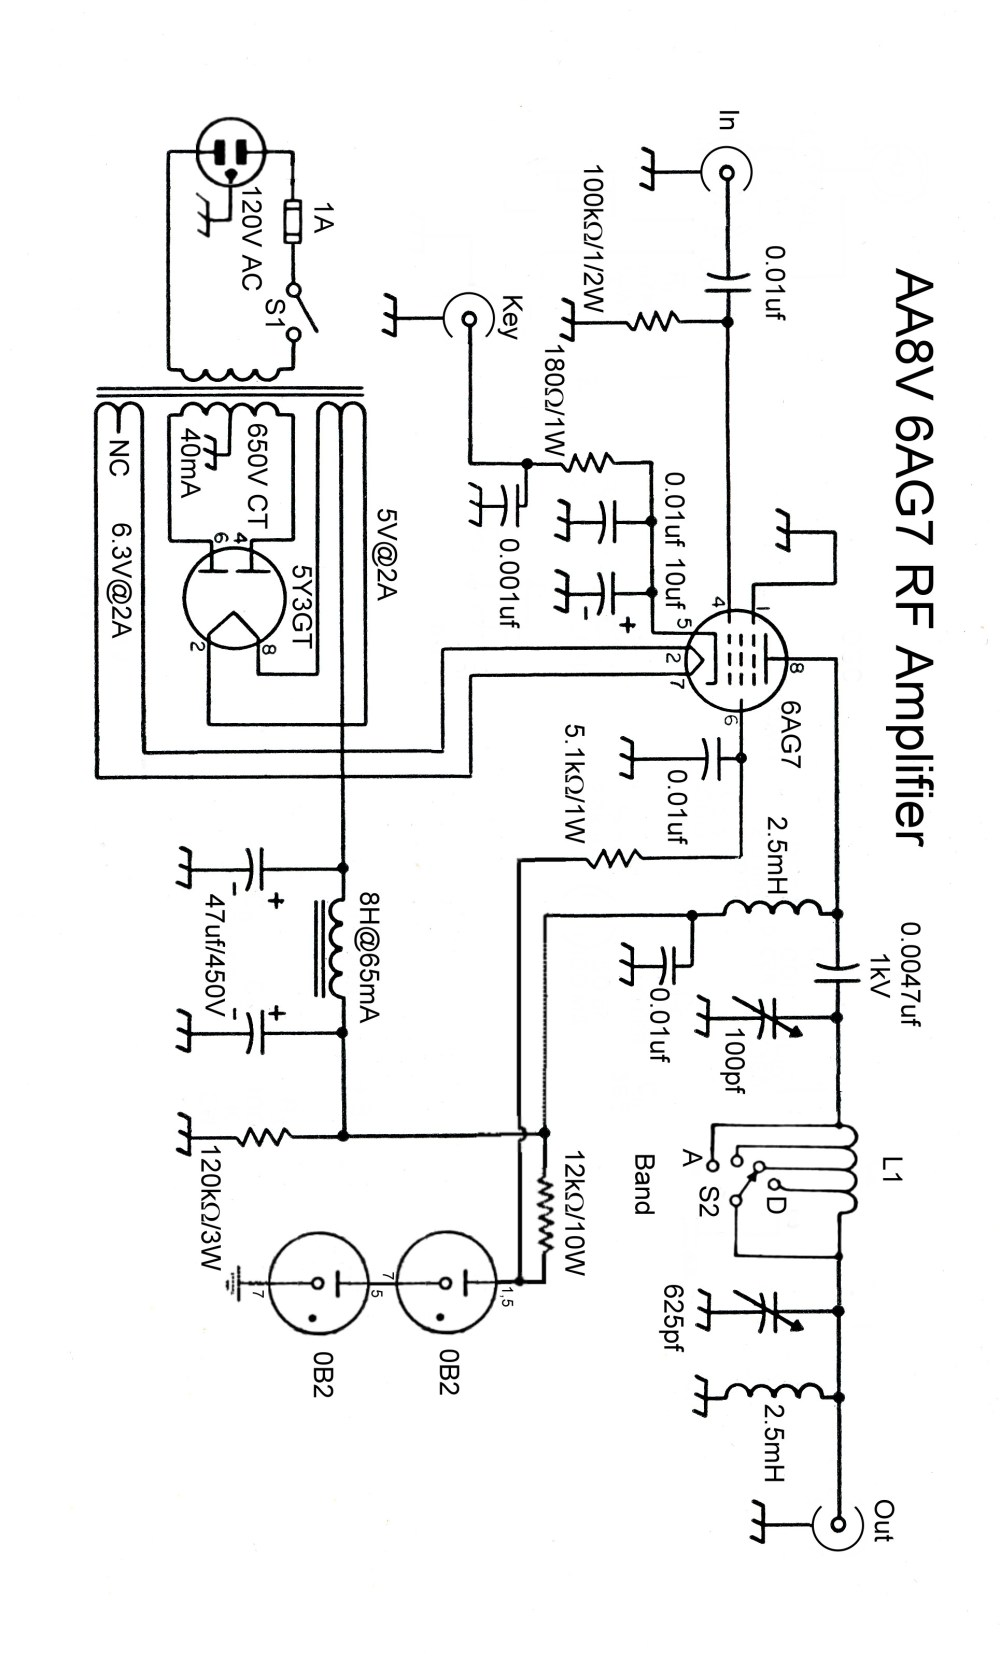 medium resolution of the aa8v 6ag7 amplifier schematic diagrams and circuit descriptions click on image for higher resolution schematic